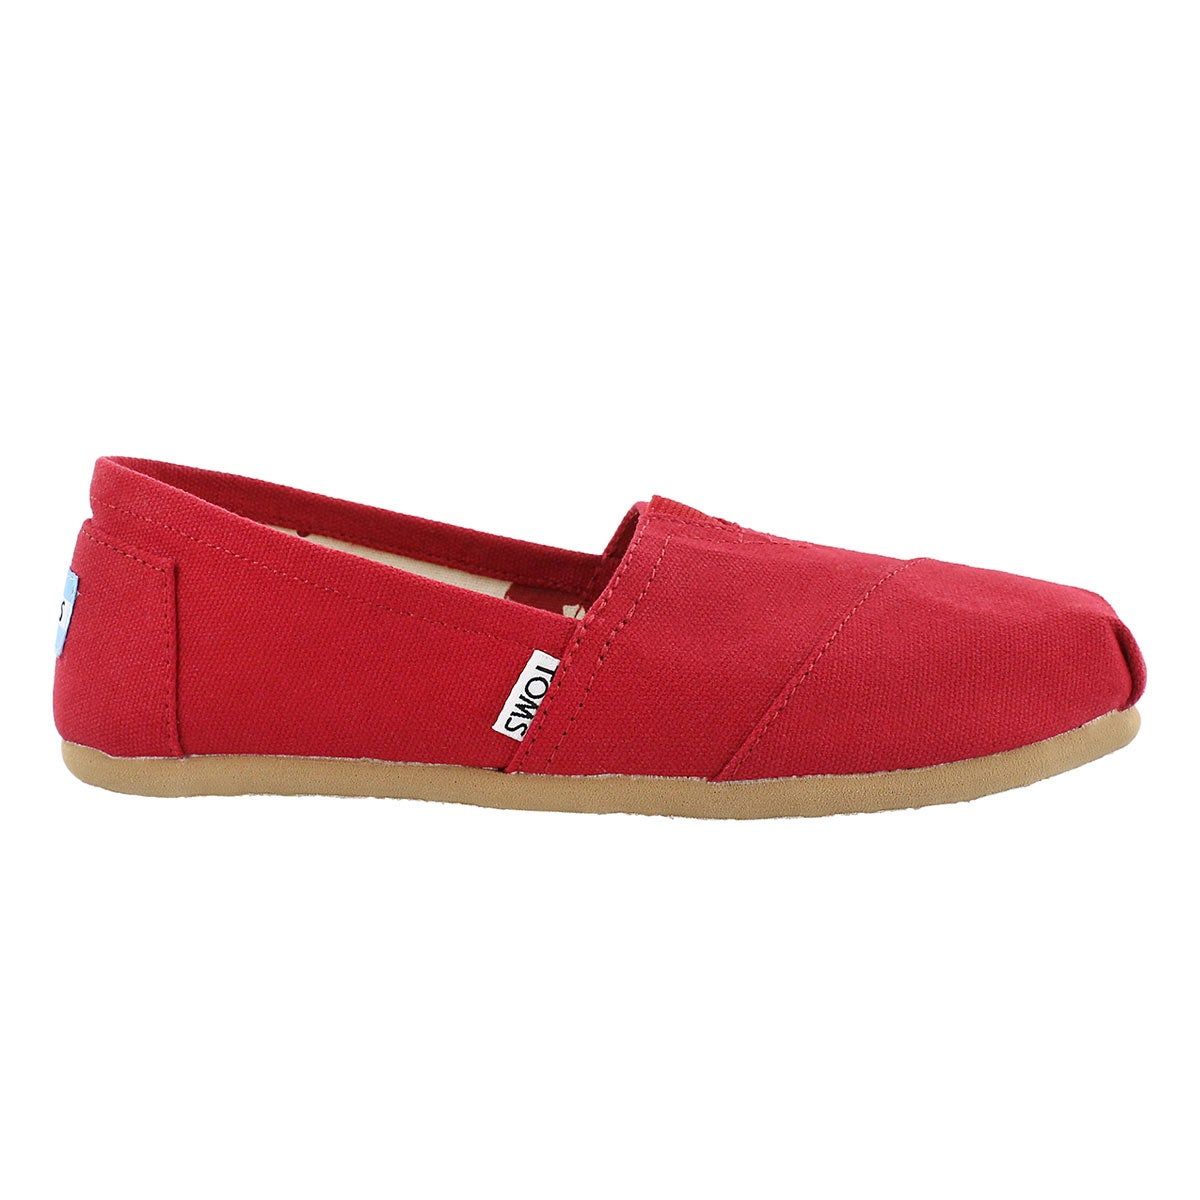 Lds Classic red canvas loafer